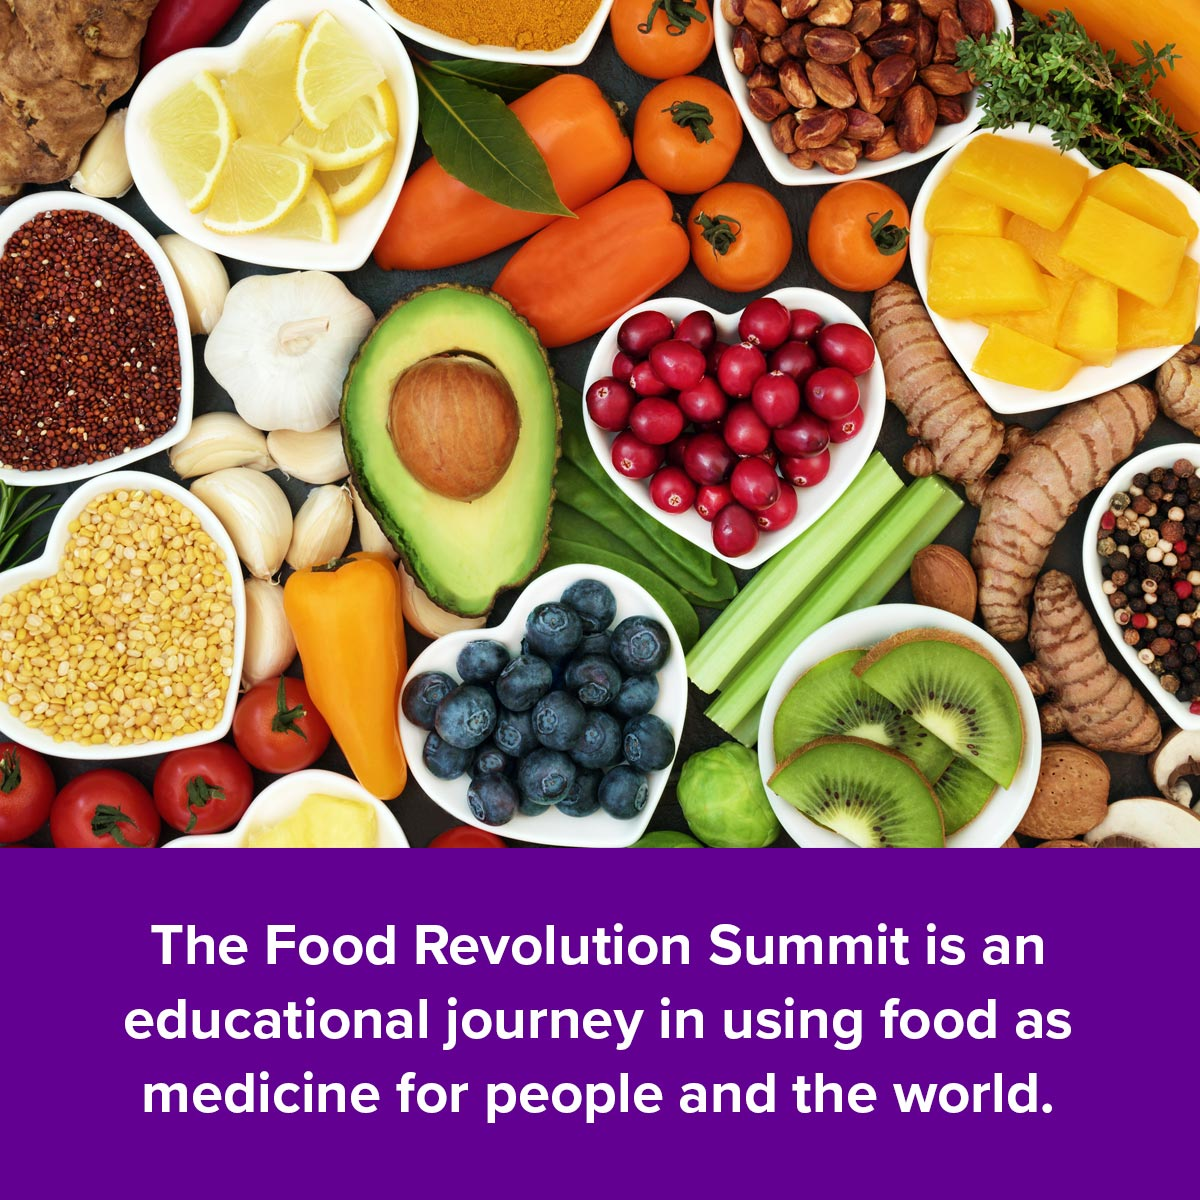 The Food Revolution Summit is an educational journey using food as medicine for people and the world.